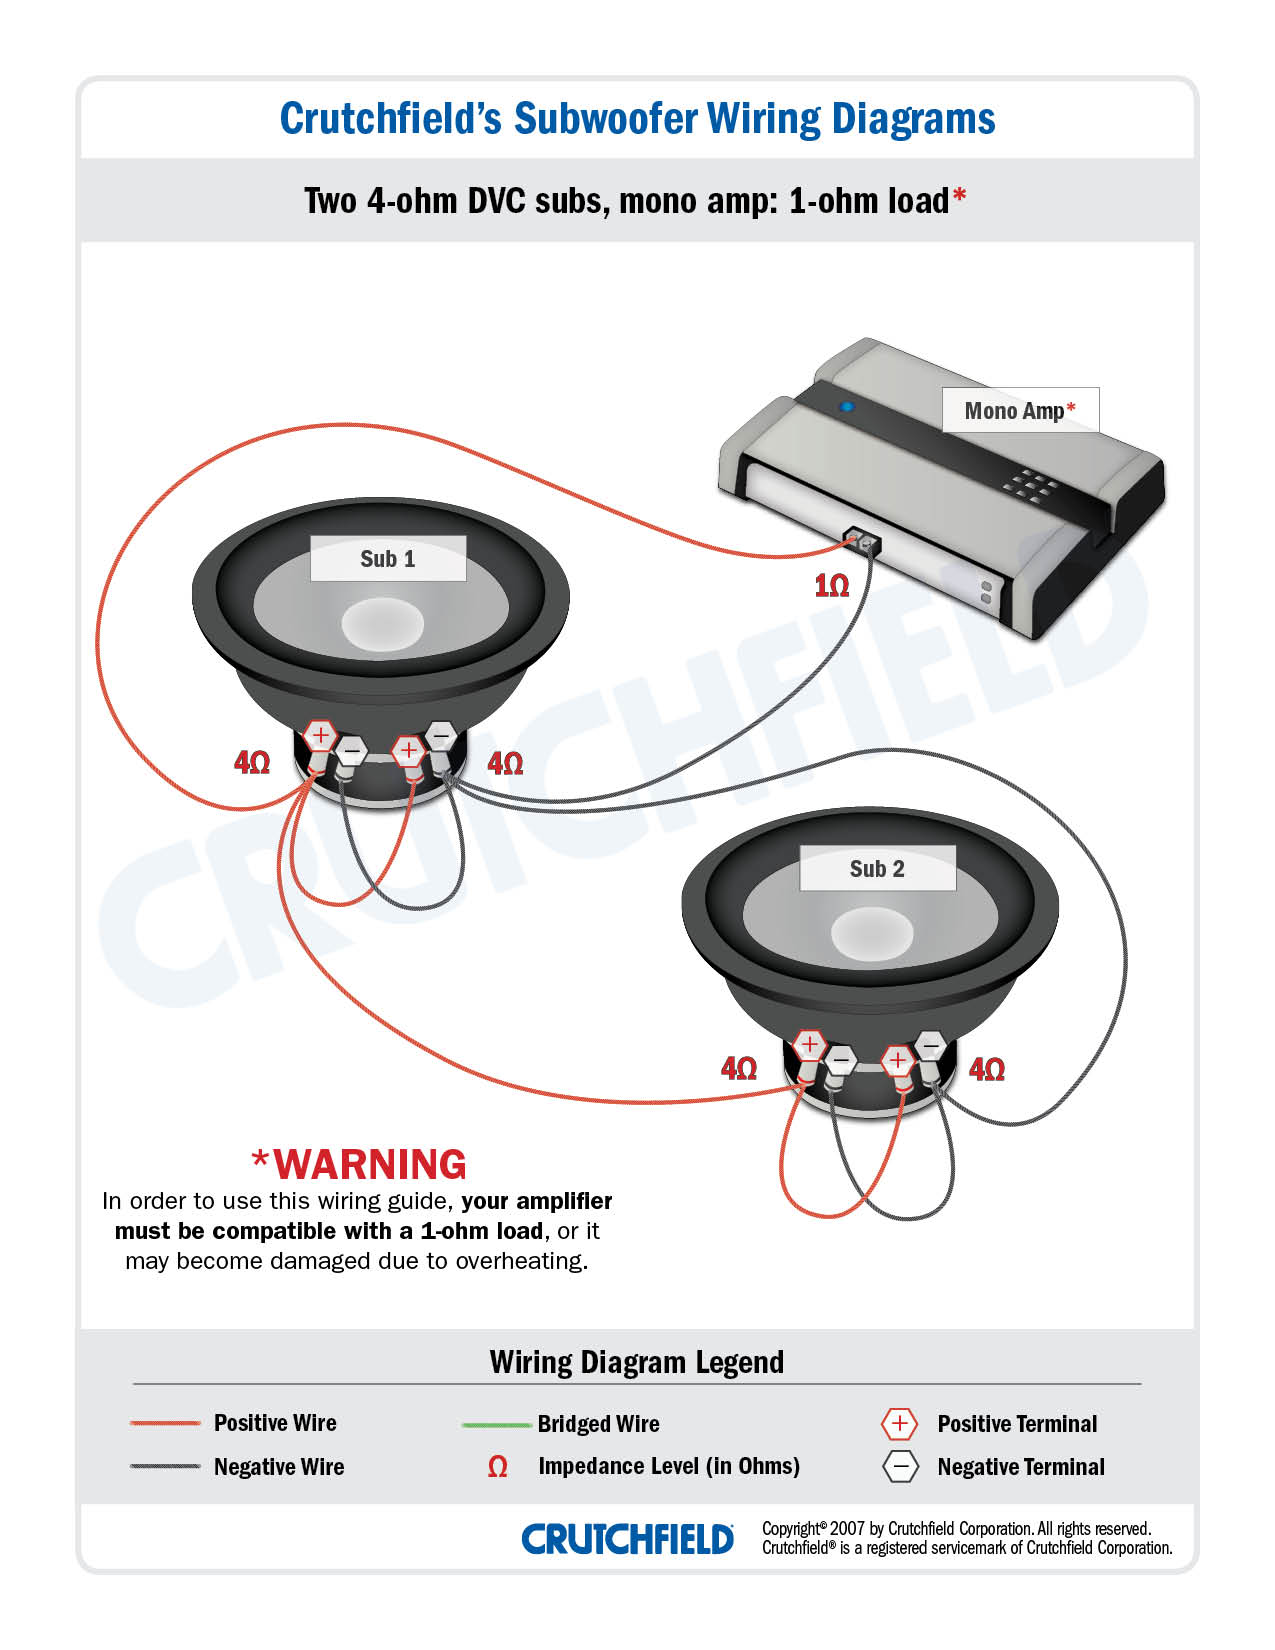 2 DVC 4 ohm mono low imp quick guide to matching subs & amps how to put together the best kicker comp s wiring diagram at readyjetset.co